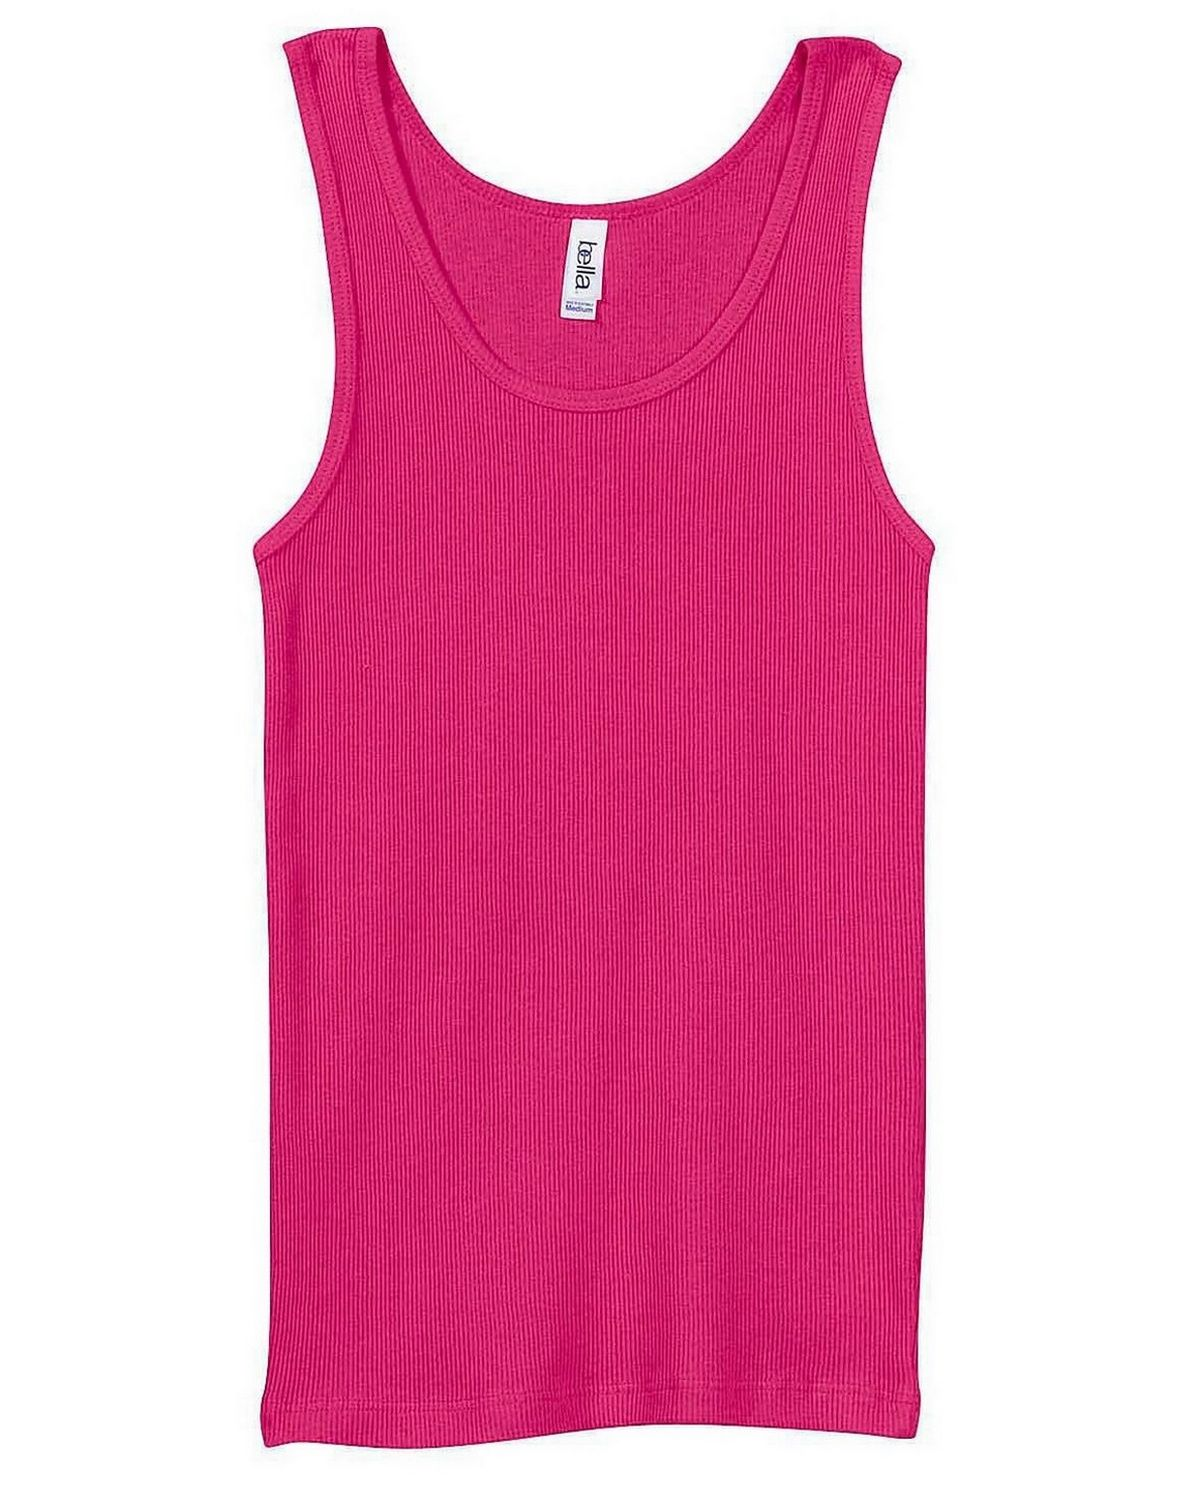 Bella + Canvas 4000 Ladies 2x1 Rib Tank - Berry - L 4000